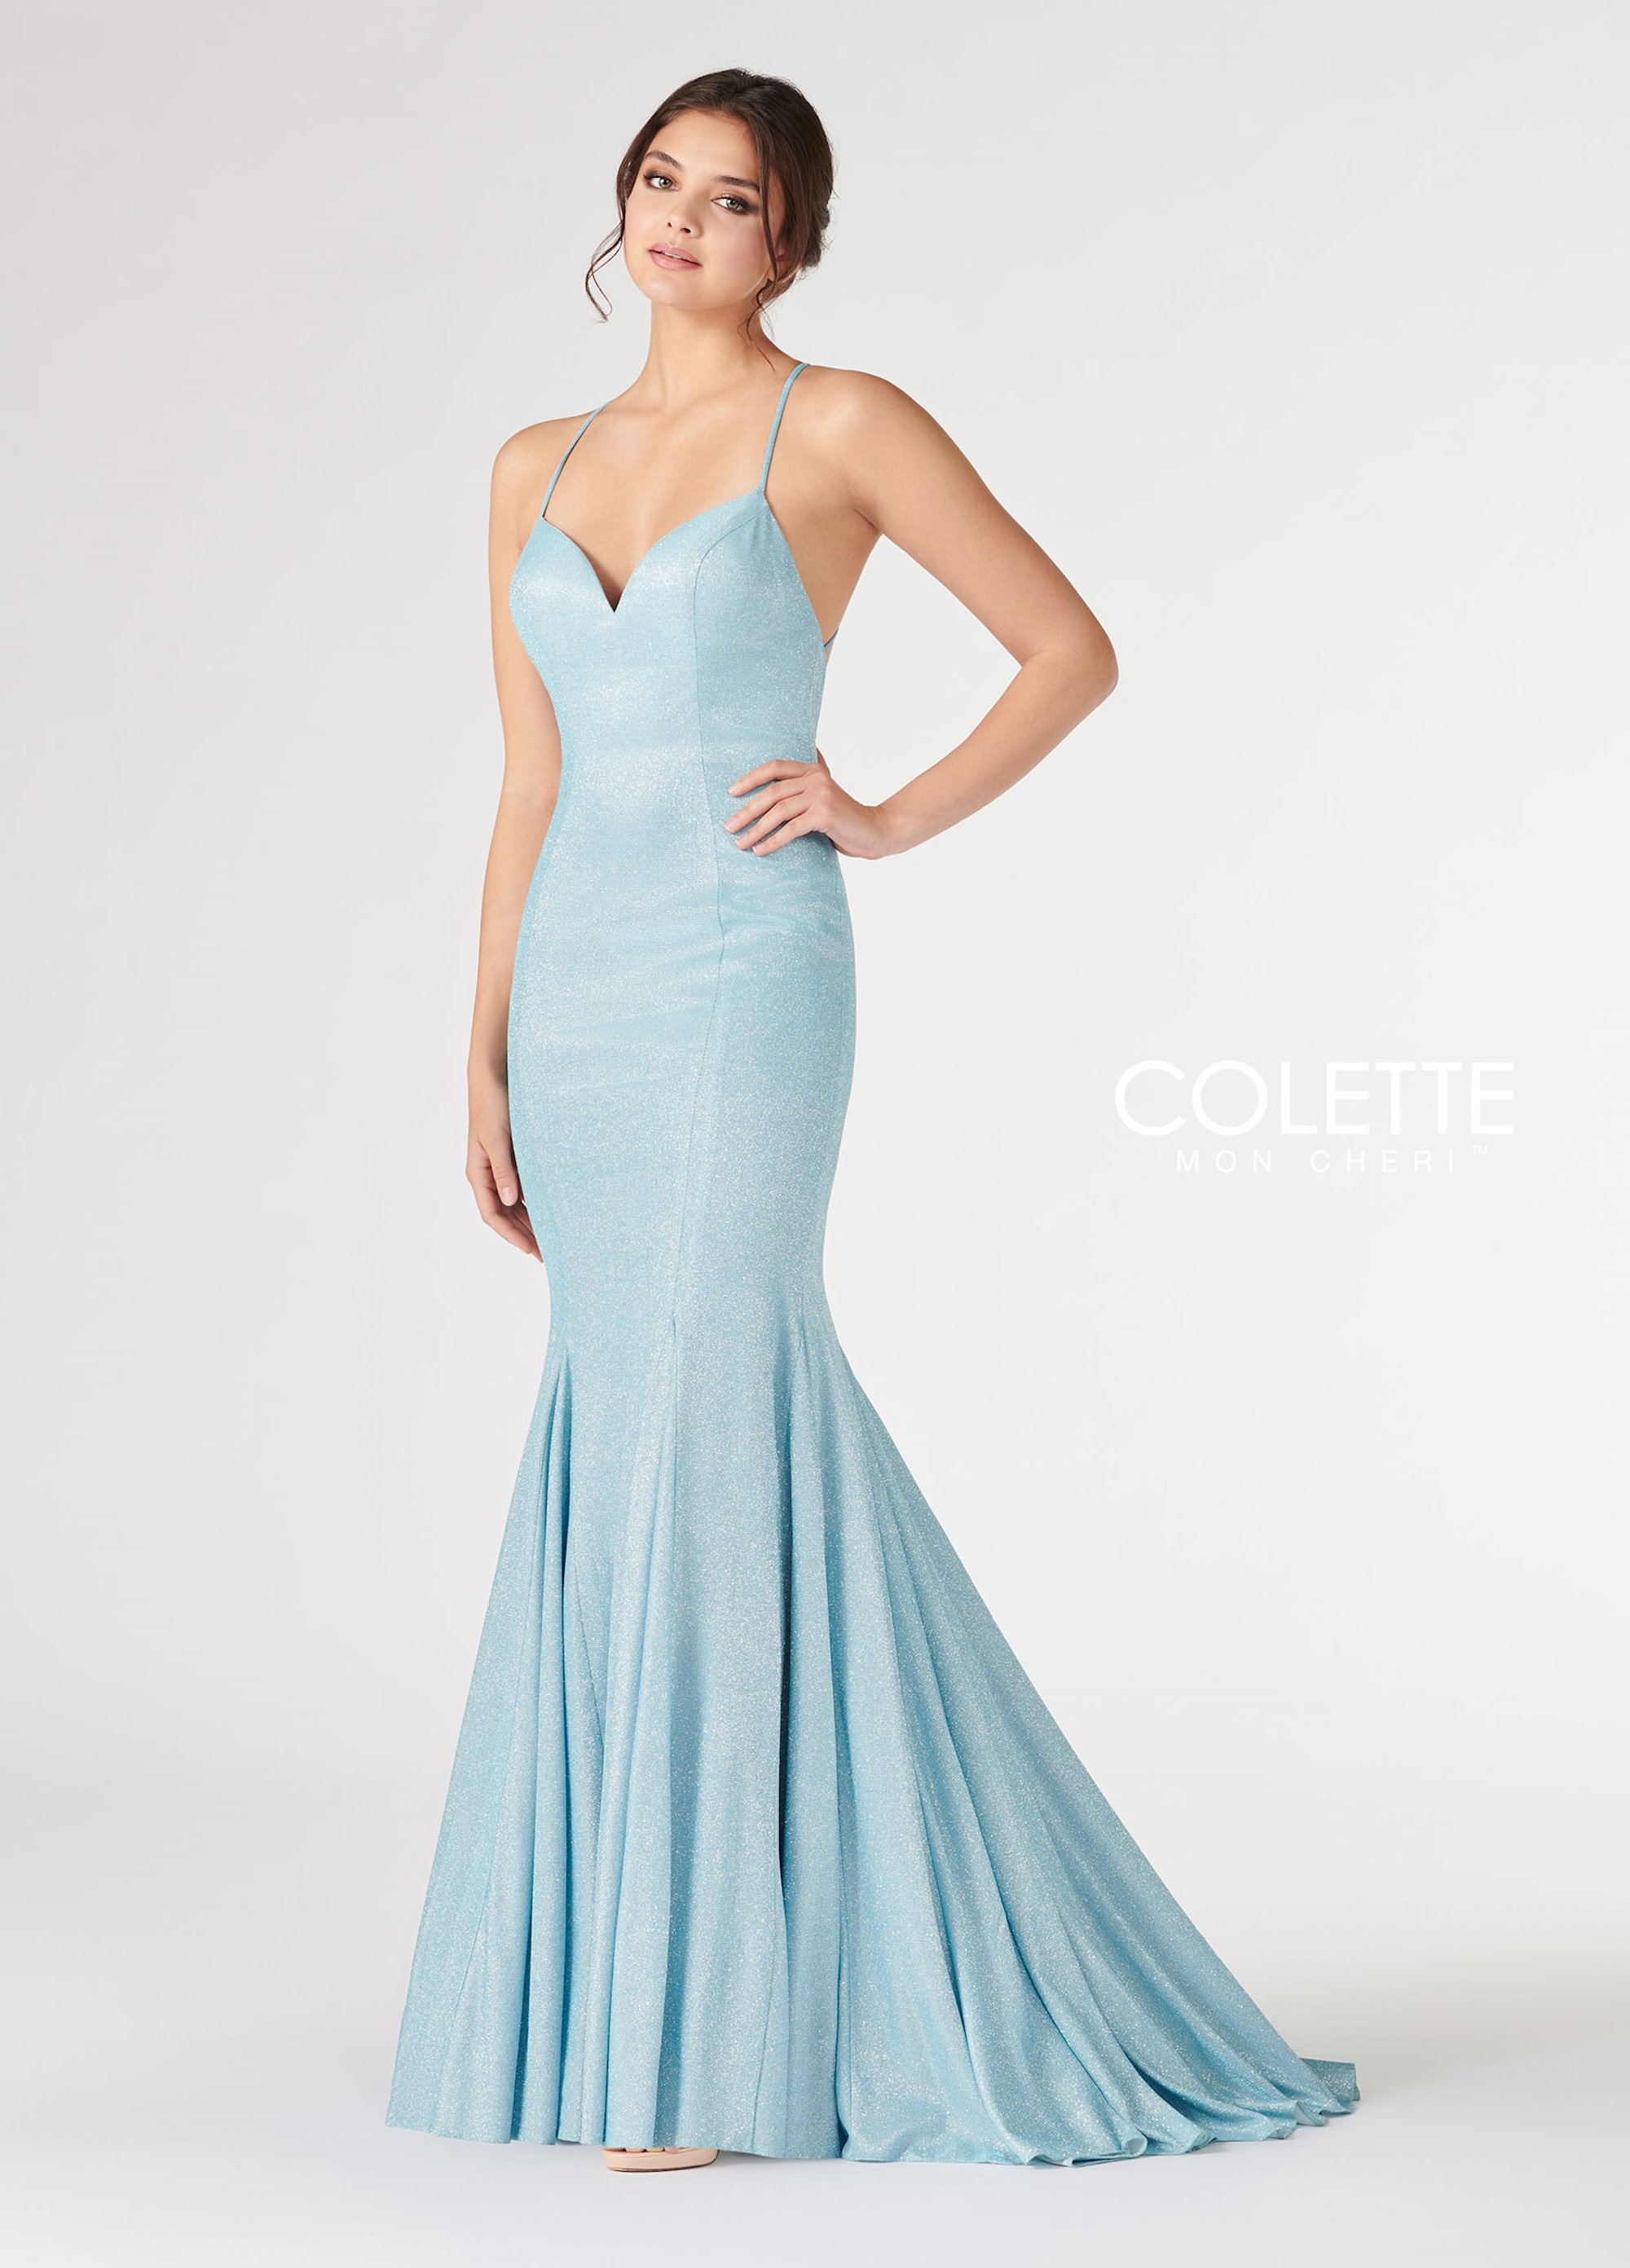 52b4d95ff0e Colette for Mon Cheri - CL19901 Prom Dresses and Gowns